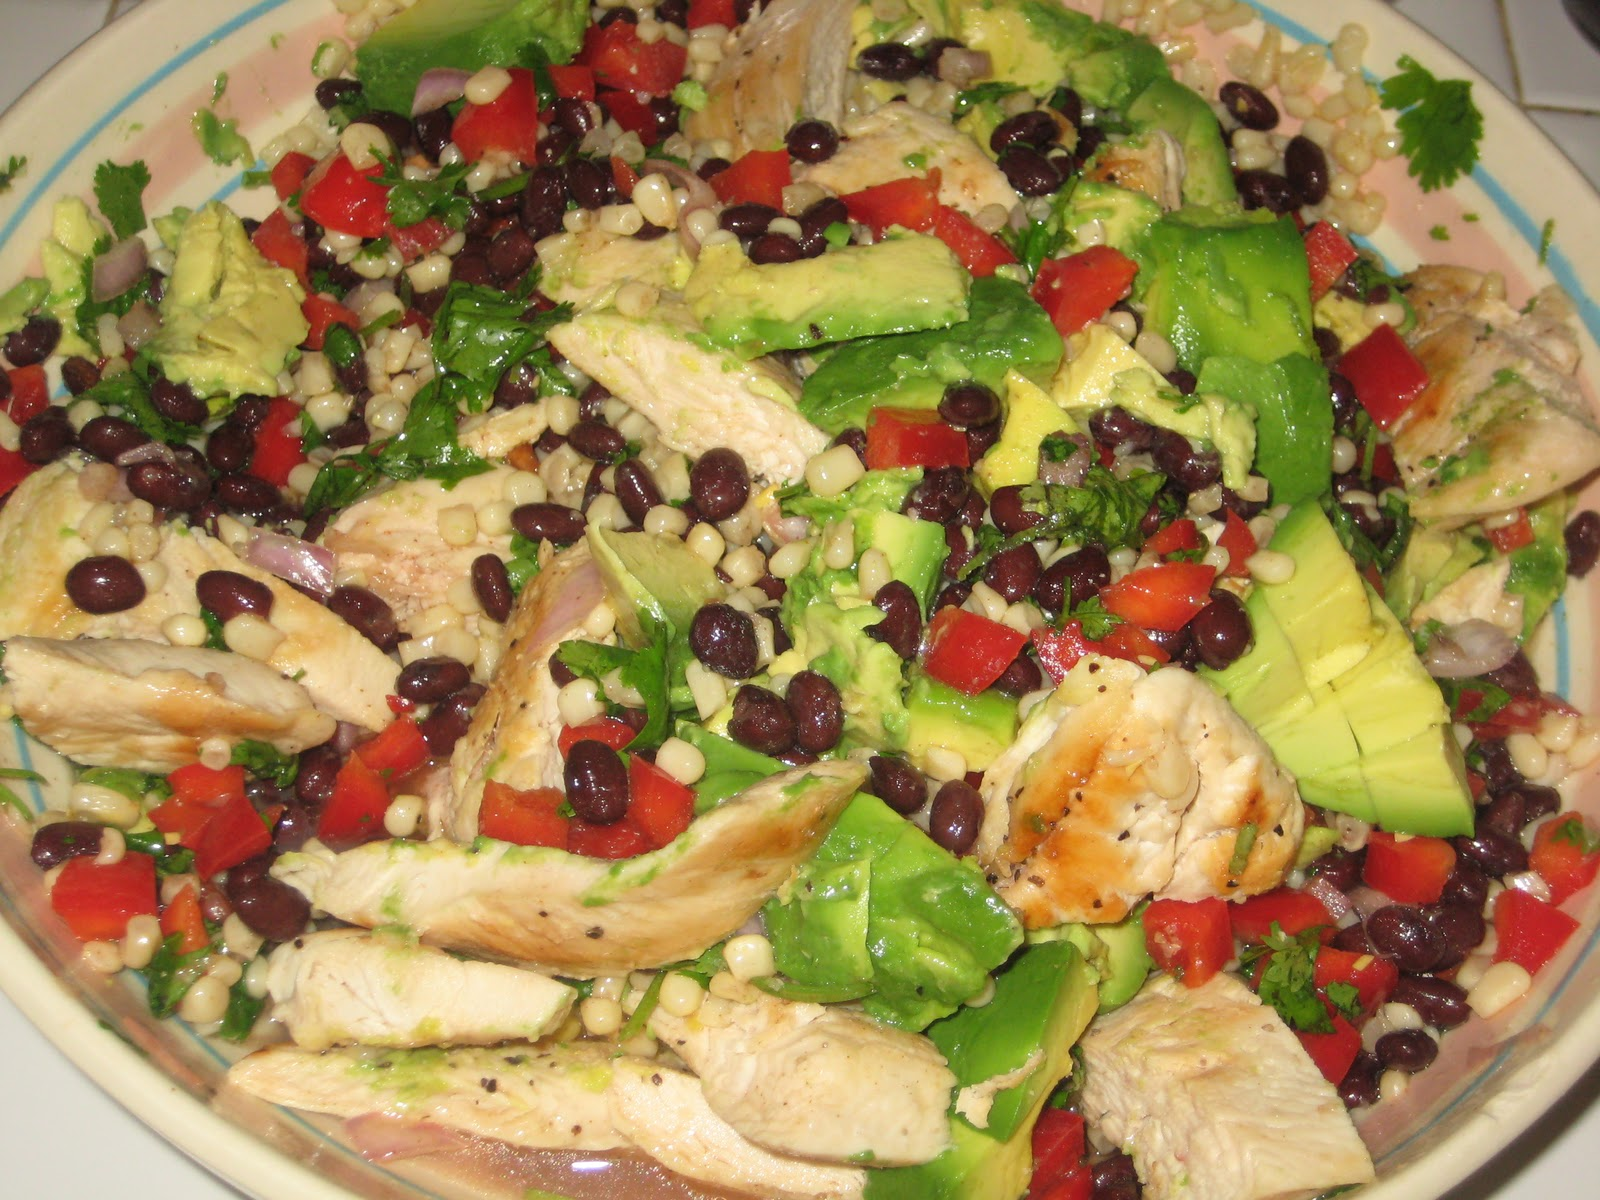 ... Chicken, Avocado and Black Bean Salad with Lime Cilantro Vinaigrette